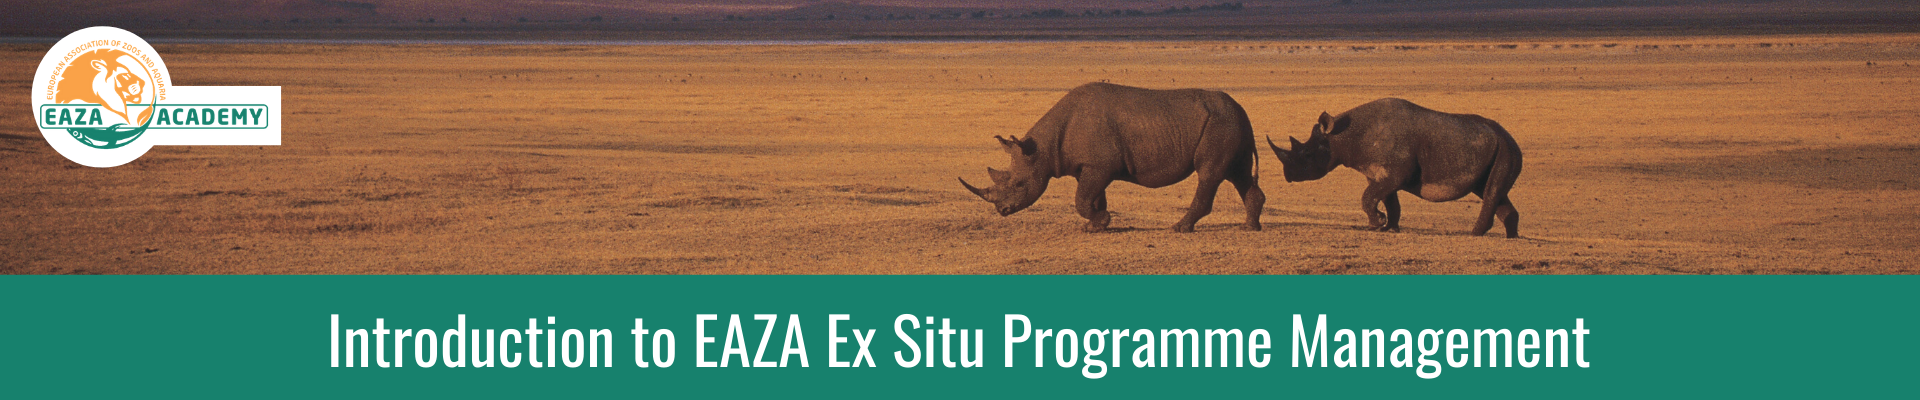 Introduction to EAZA Ex situ Programme Management_March 2021